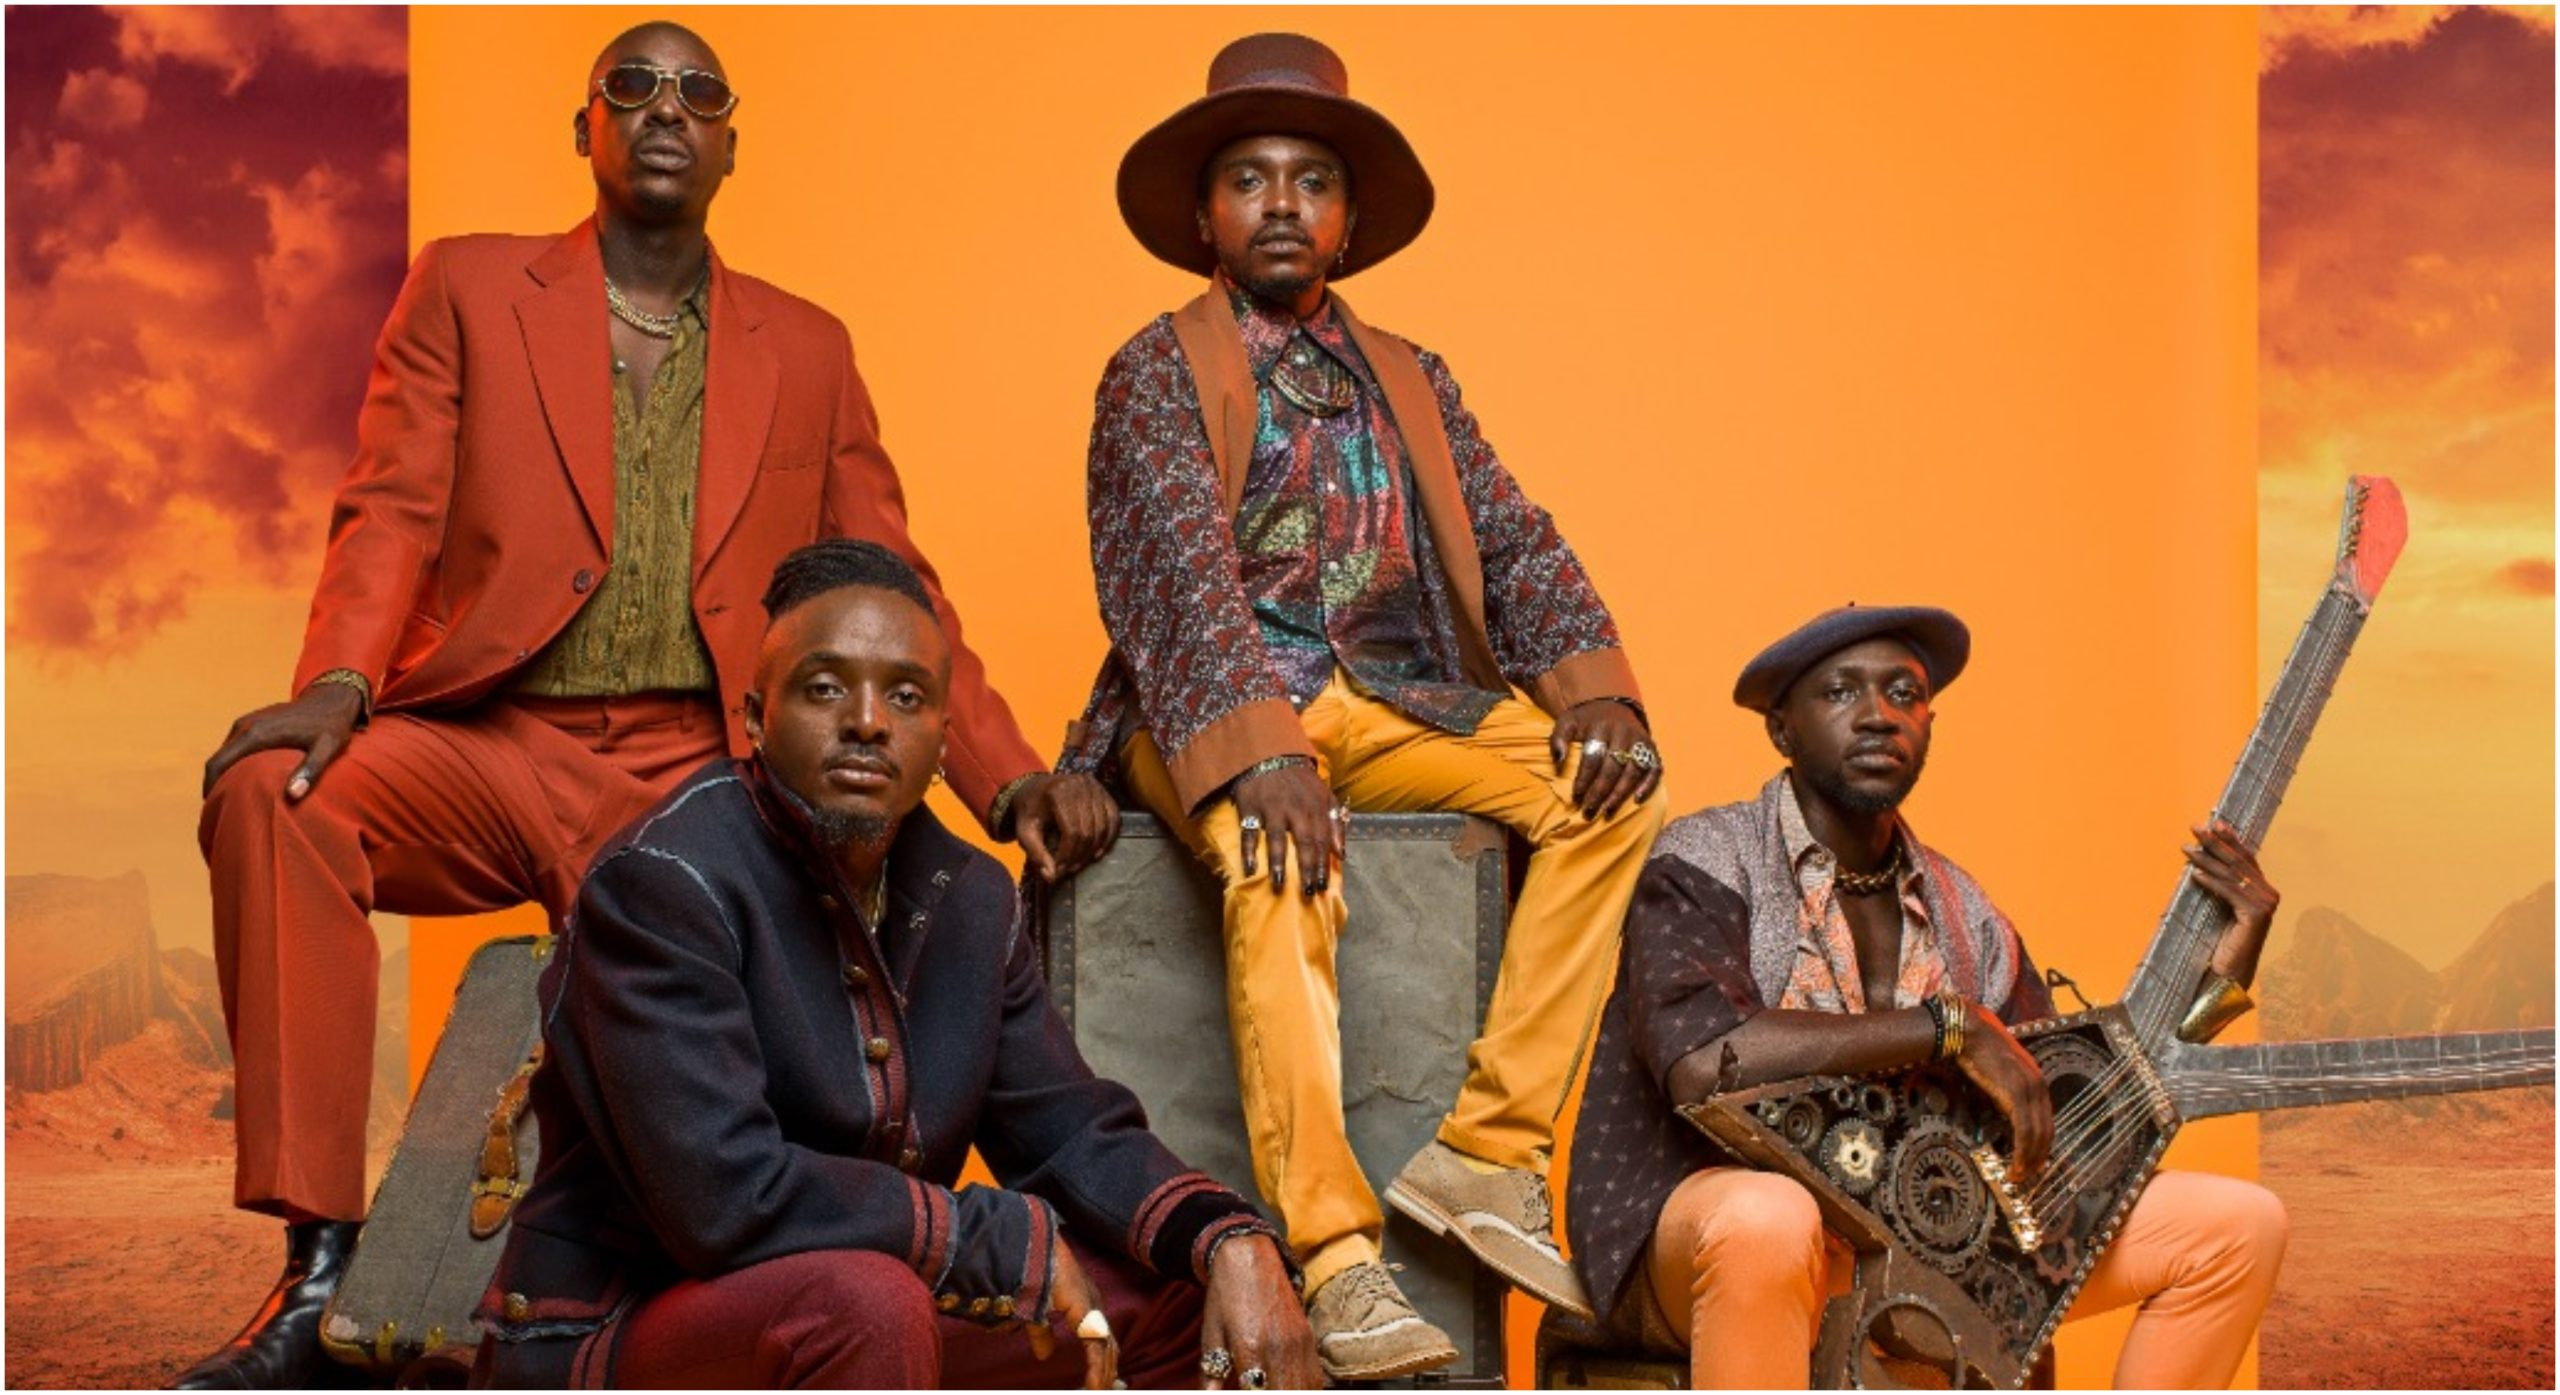 Sauti Sol finally drop much-awaited 13-track album (Audio)